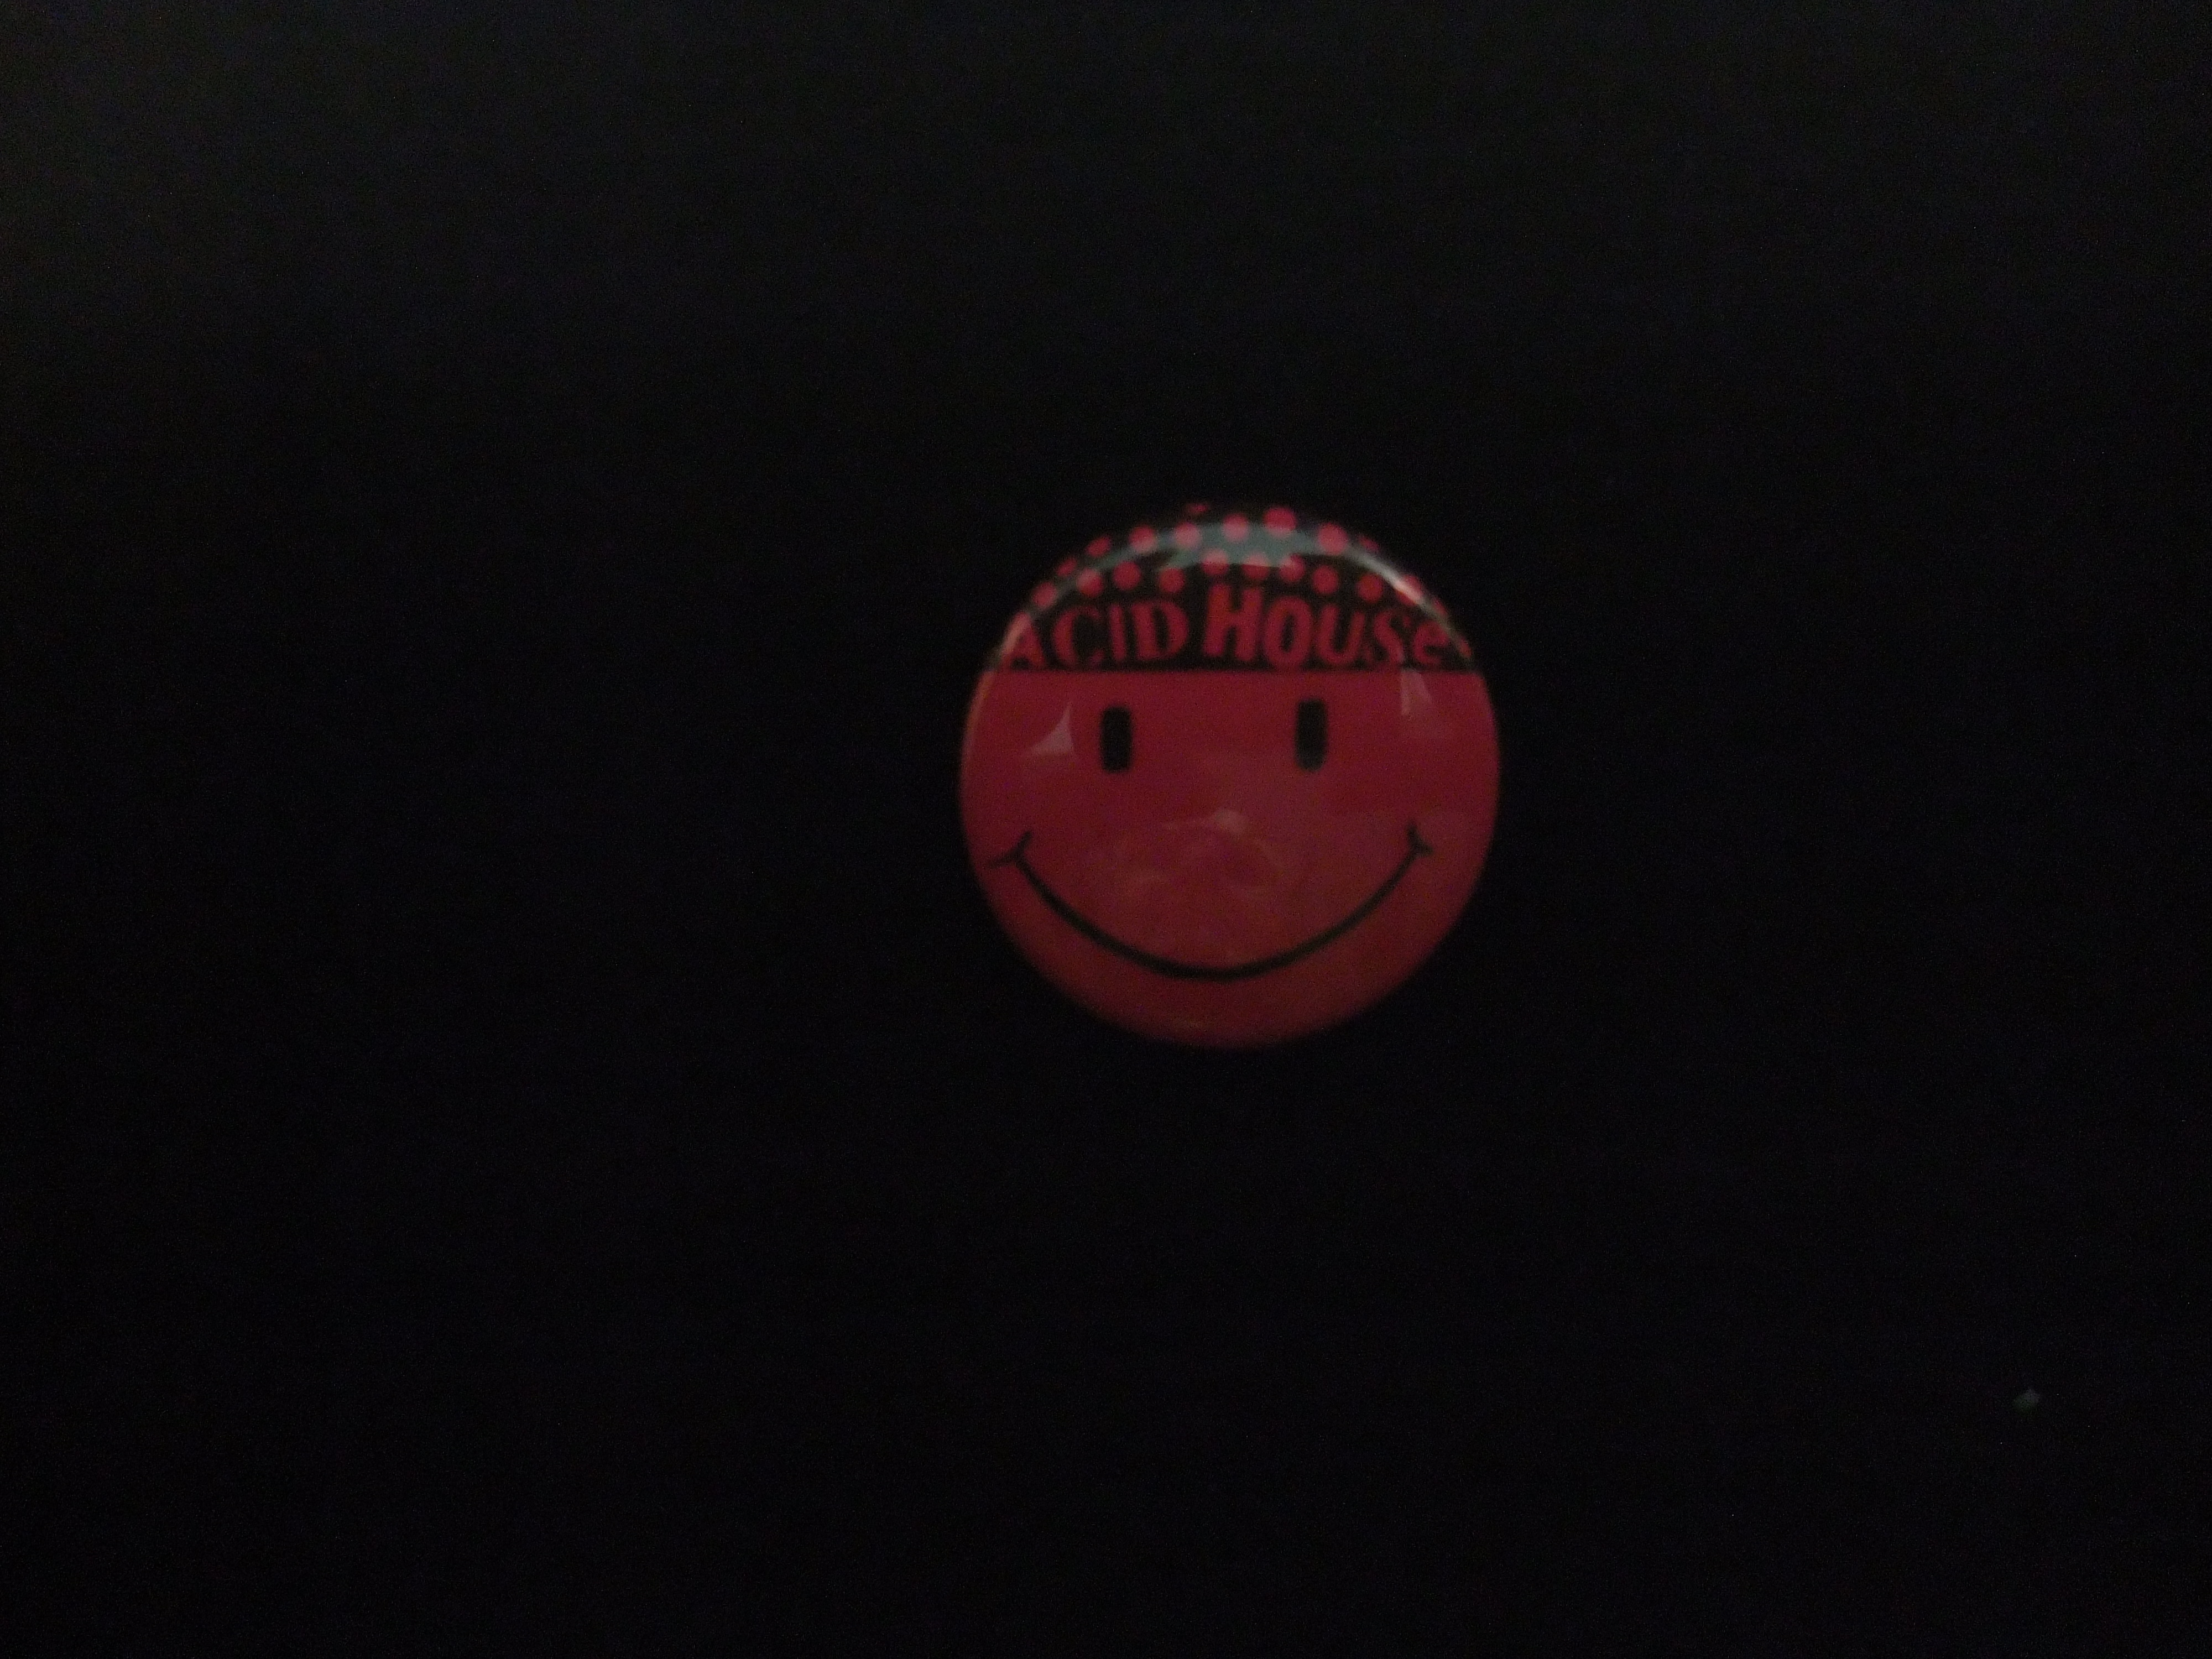 Acid house muziekstroming jaren 80 smiley